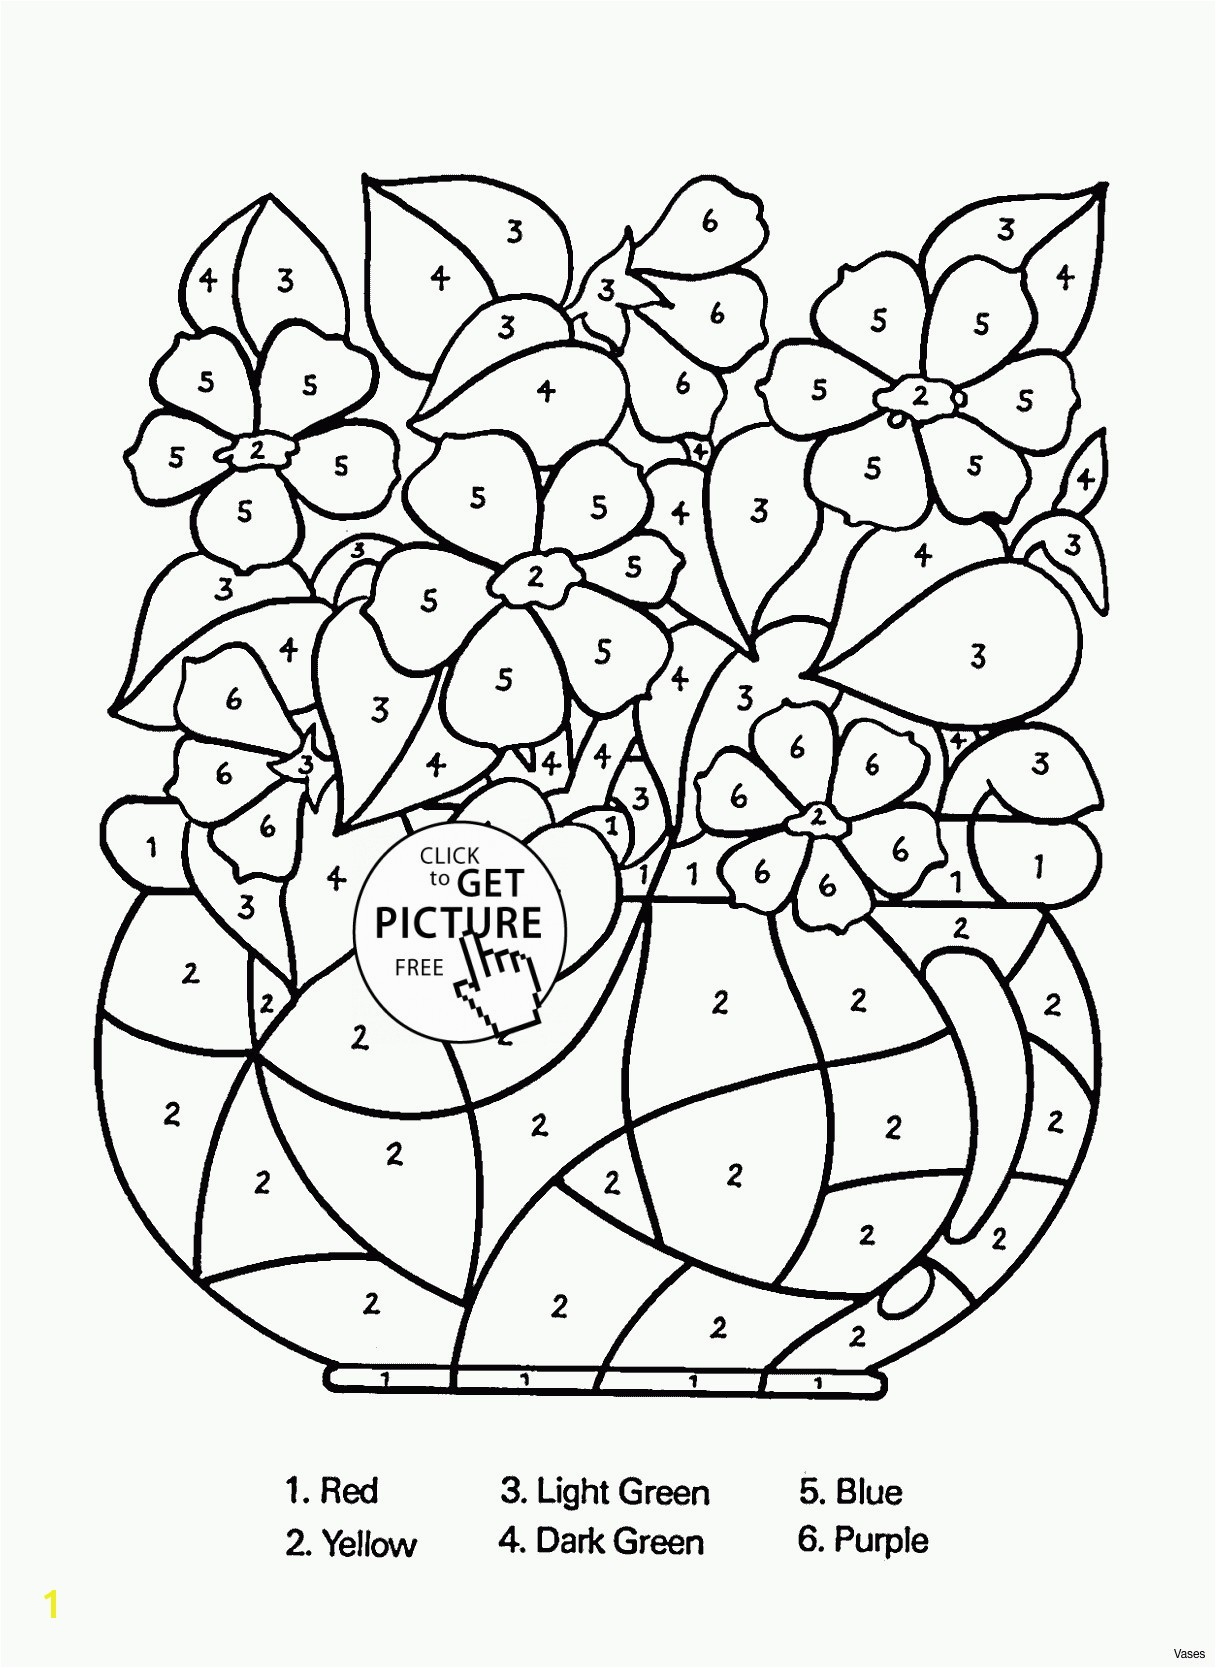 Printable Coloring Pages For Kids fall Printable Free Kids S Best Page Coloring 0d Free Coloring Pages